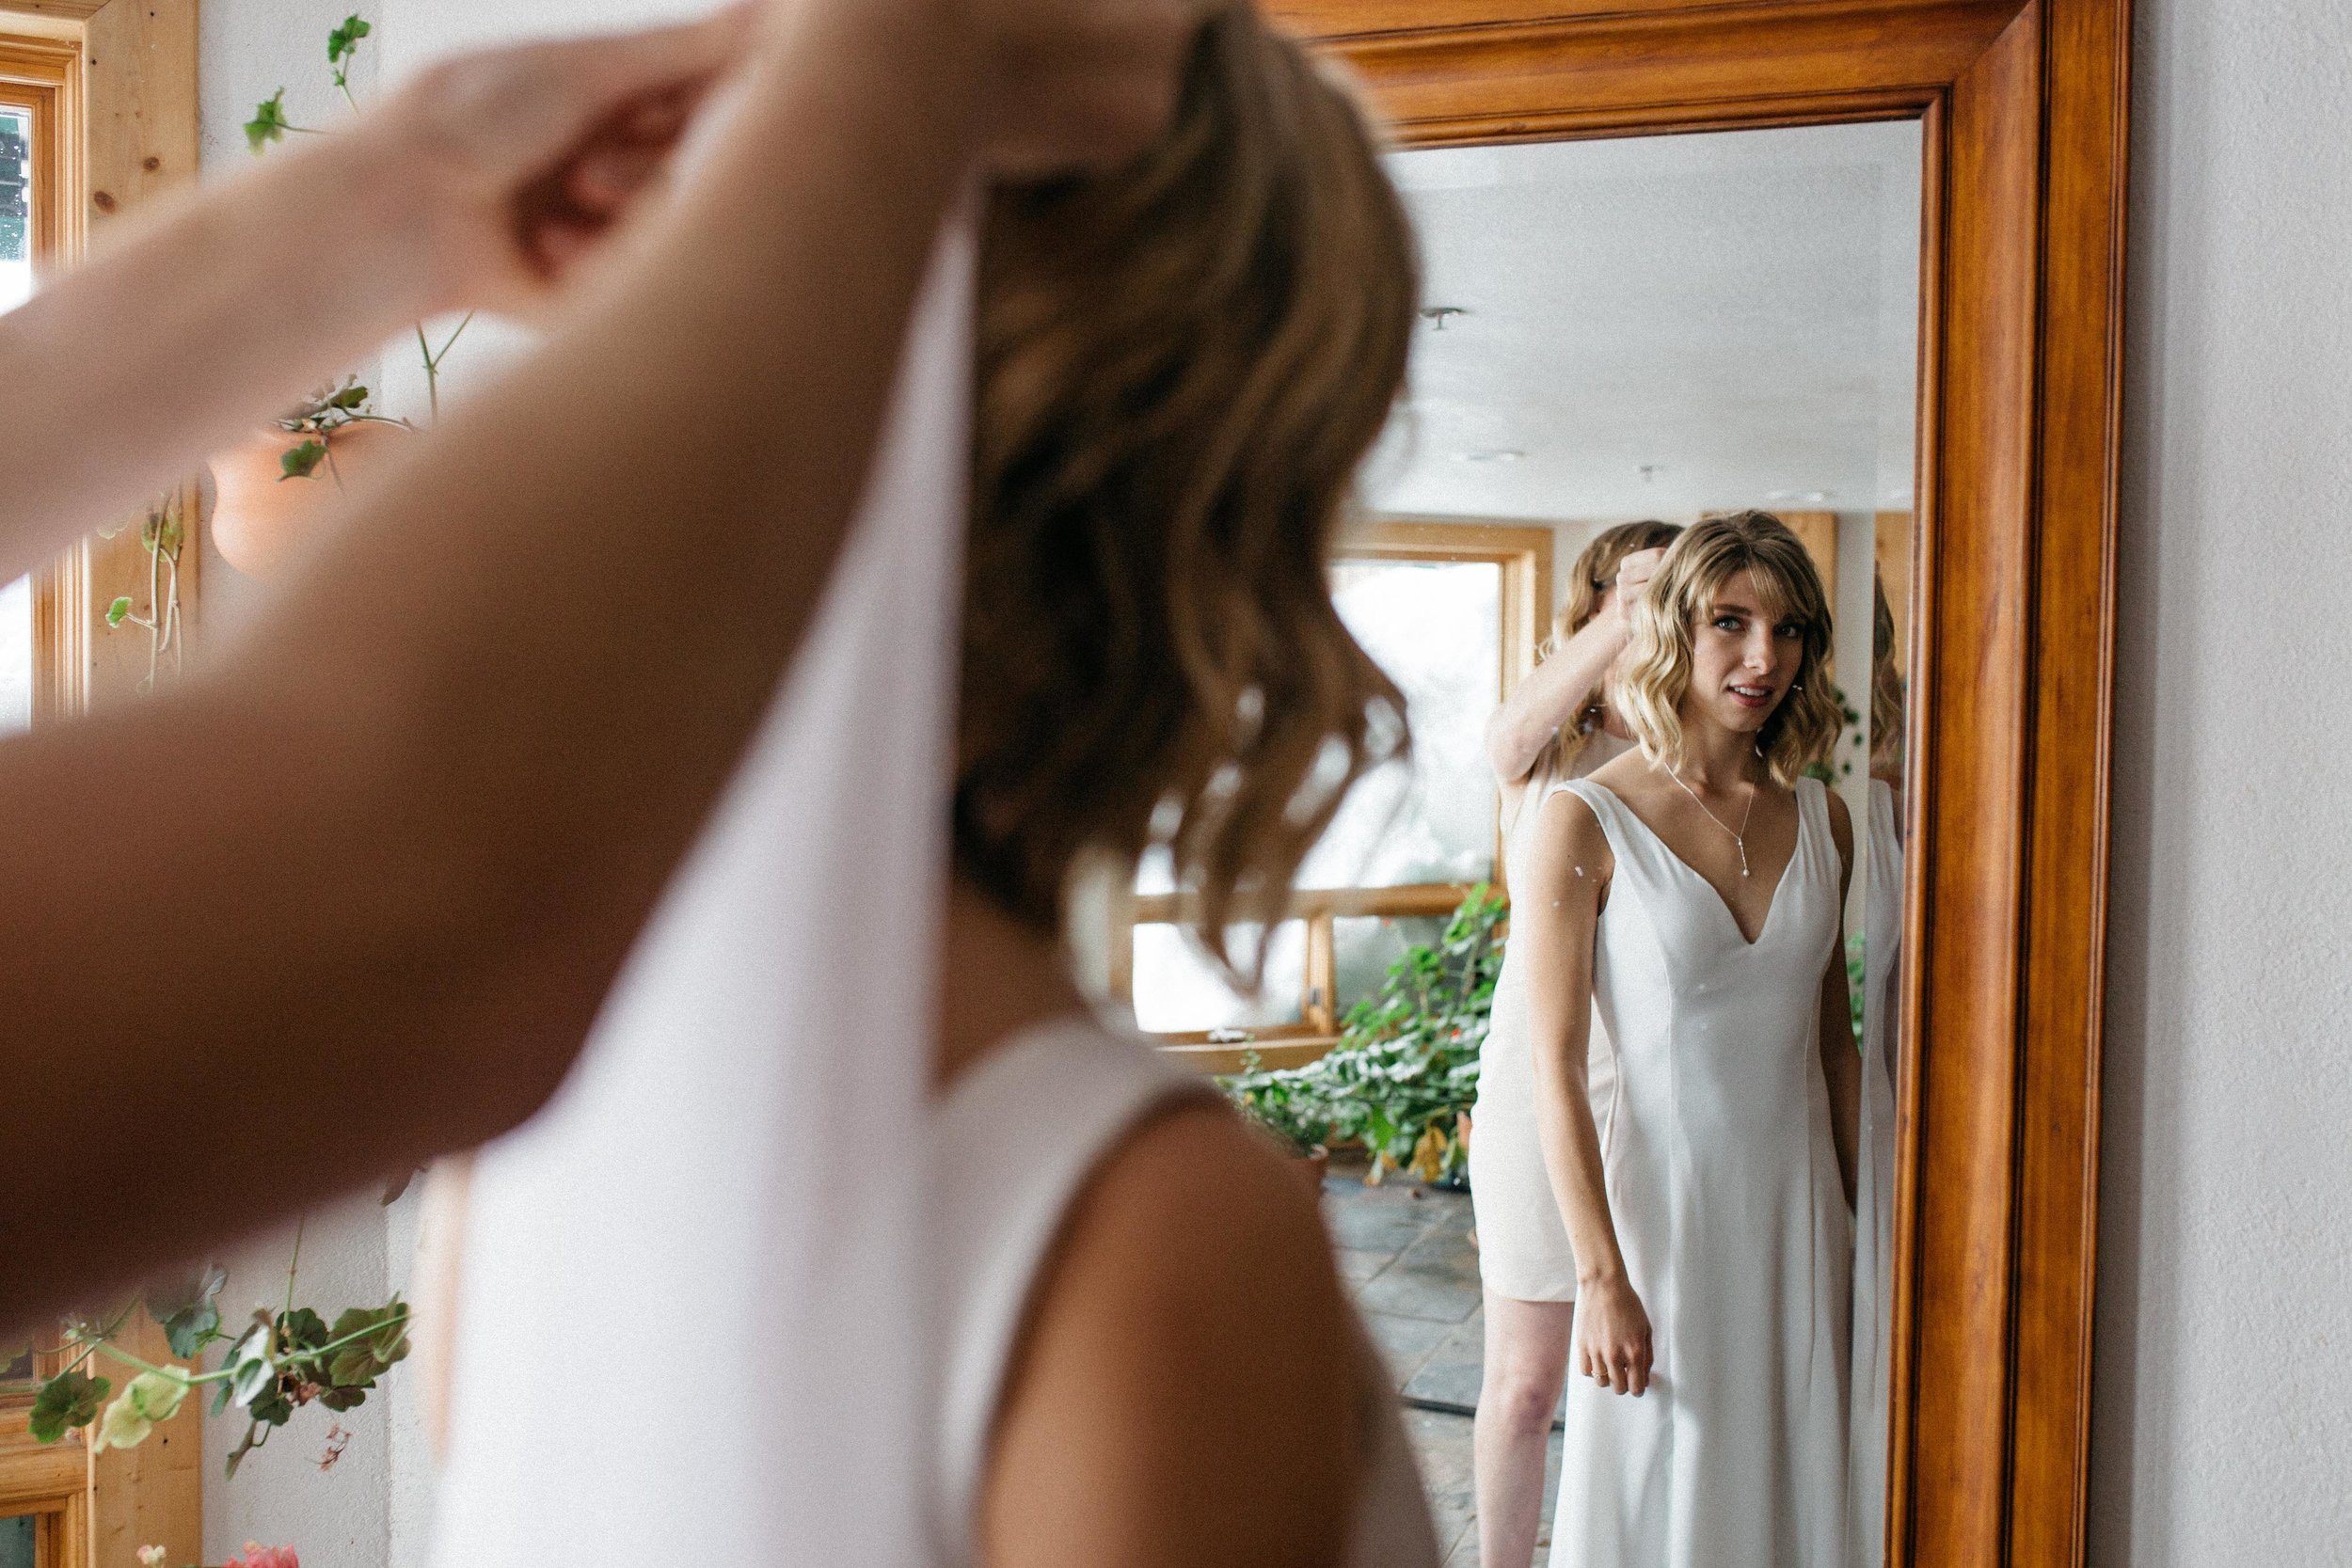 After family portraits and a bit of downtime, I realized the ceremony was a few short minutes away and I had yet to put on my veil. Ellie and I found a quiet spot with a full-length mirror and she fastened on my veil for me. One of the most unplanned, sweetest moments in our friendship, to be sure.